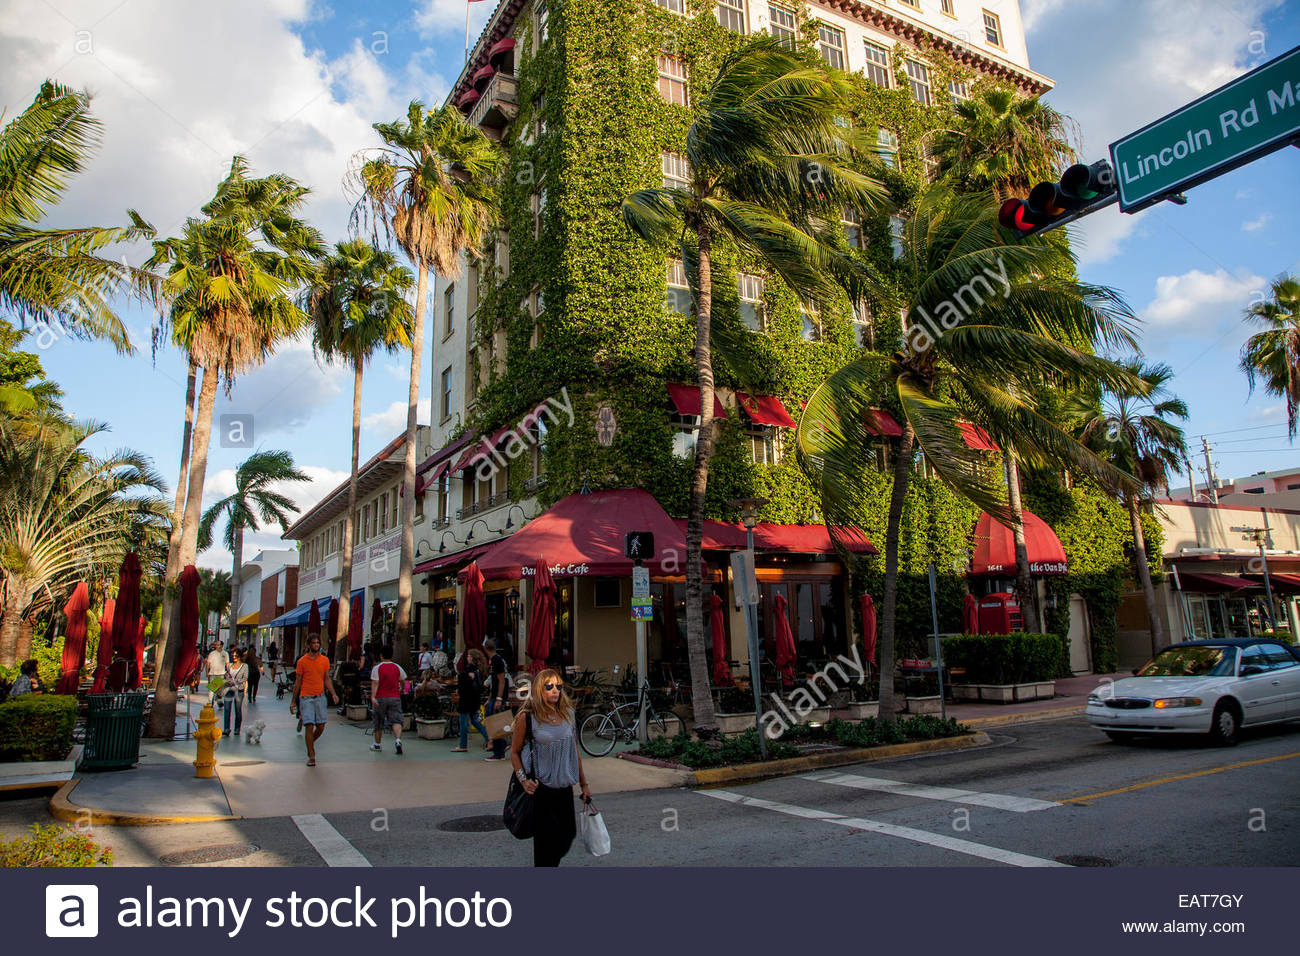 The Lincoln Road Mall attracts many shoppers. - Stock Image